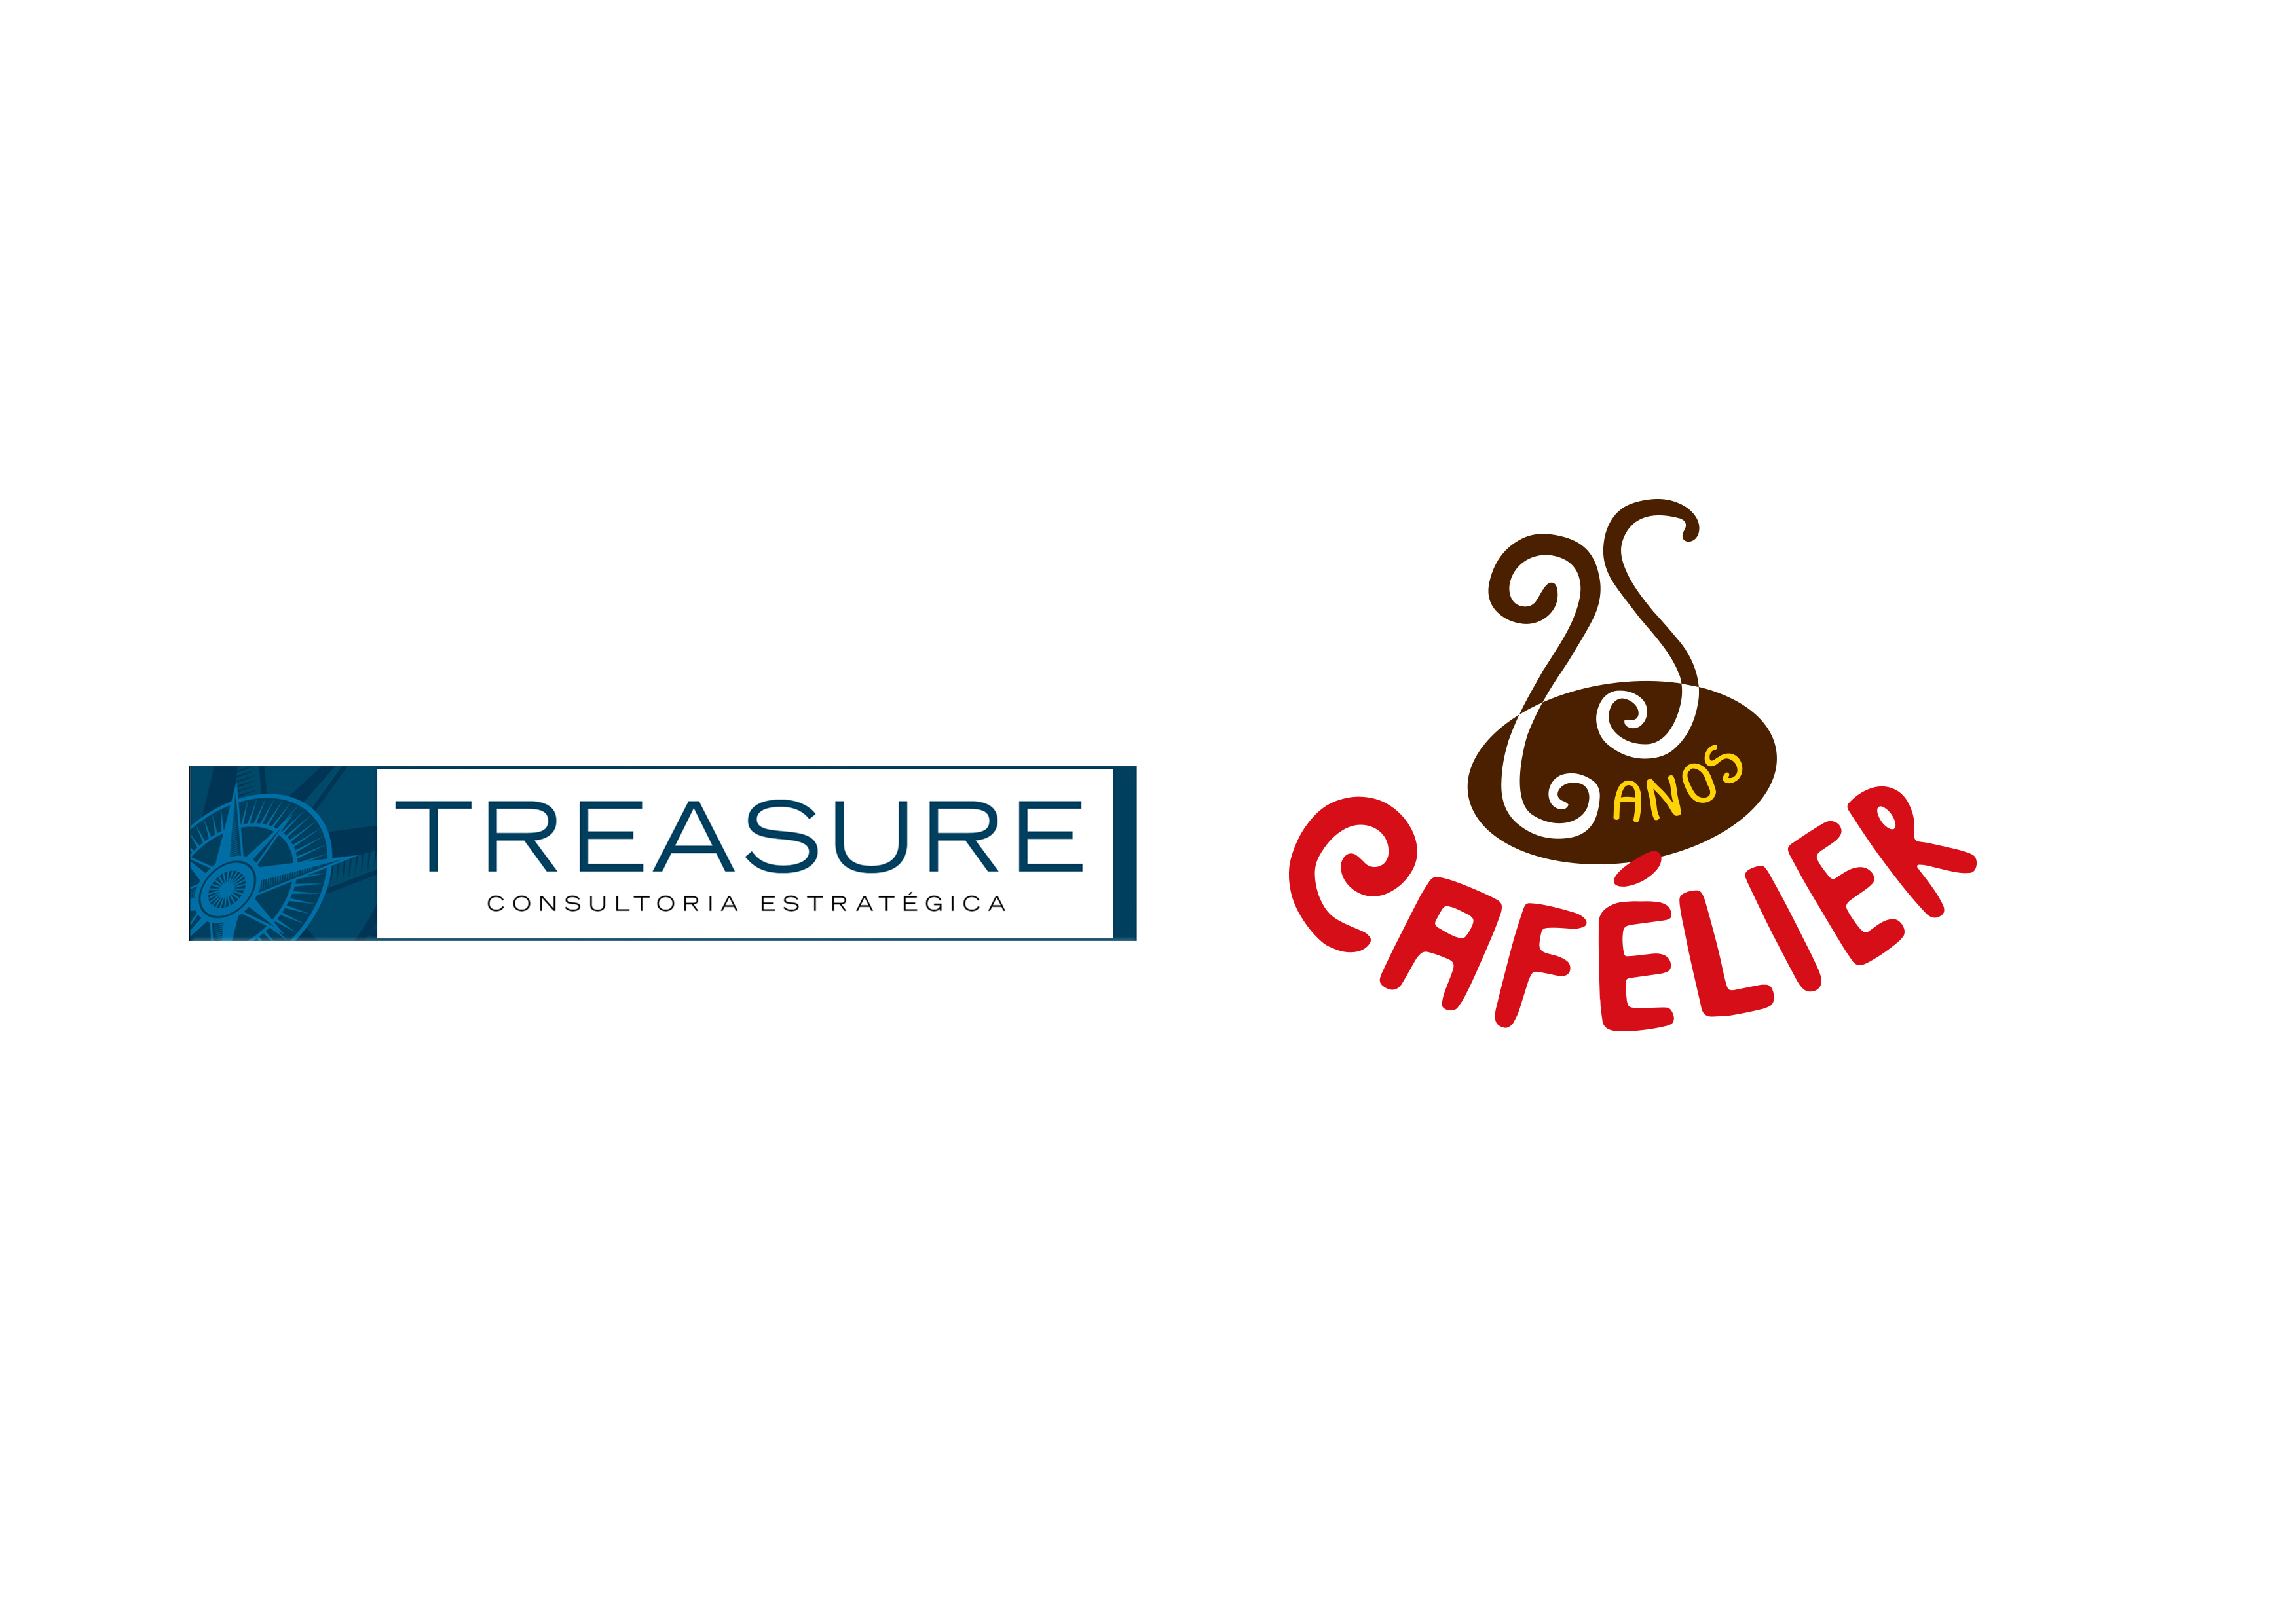 TREASURE CAFELIER